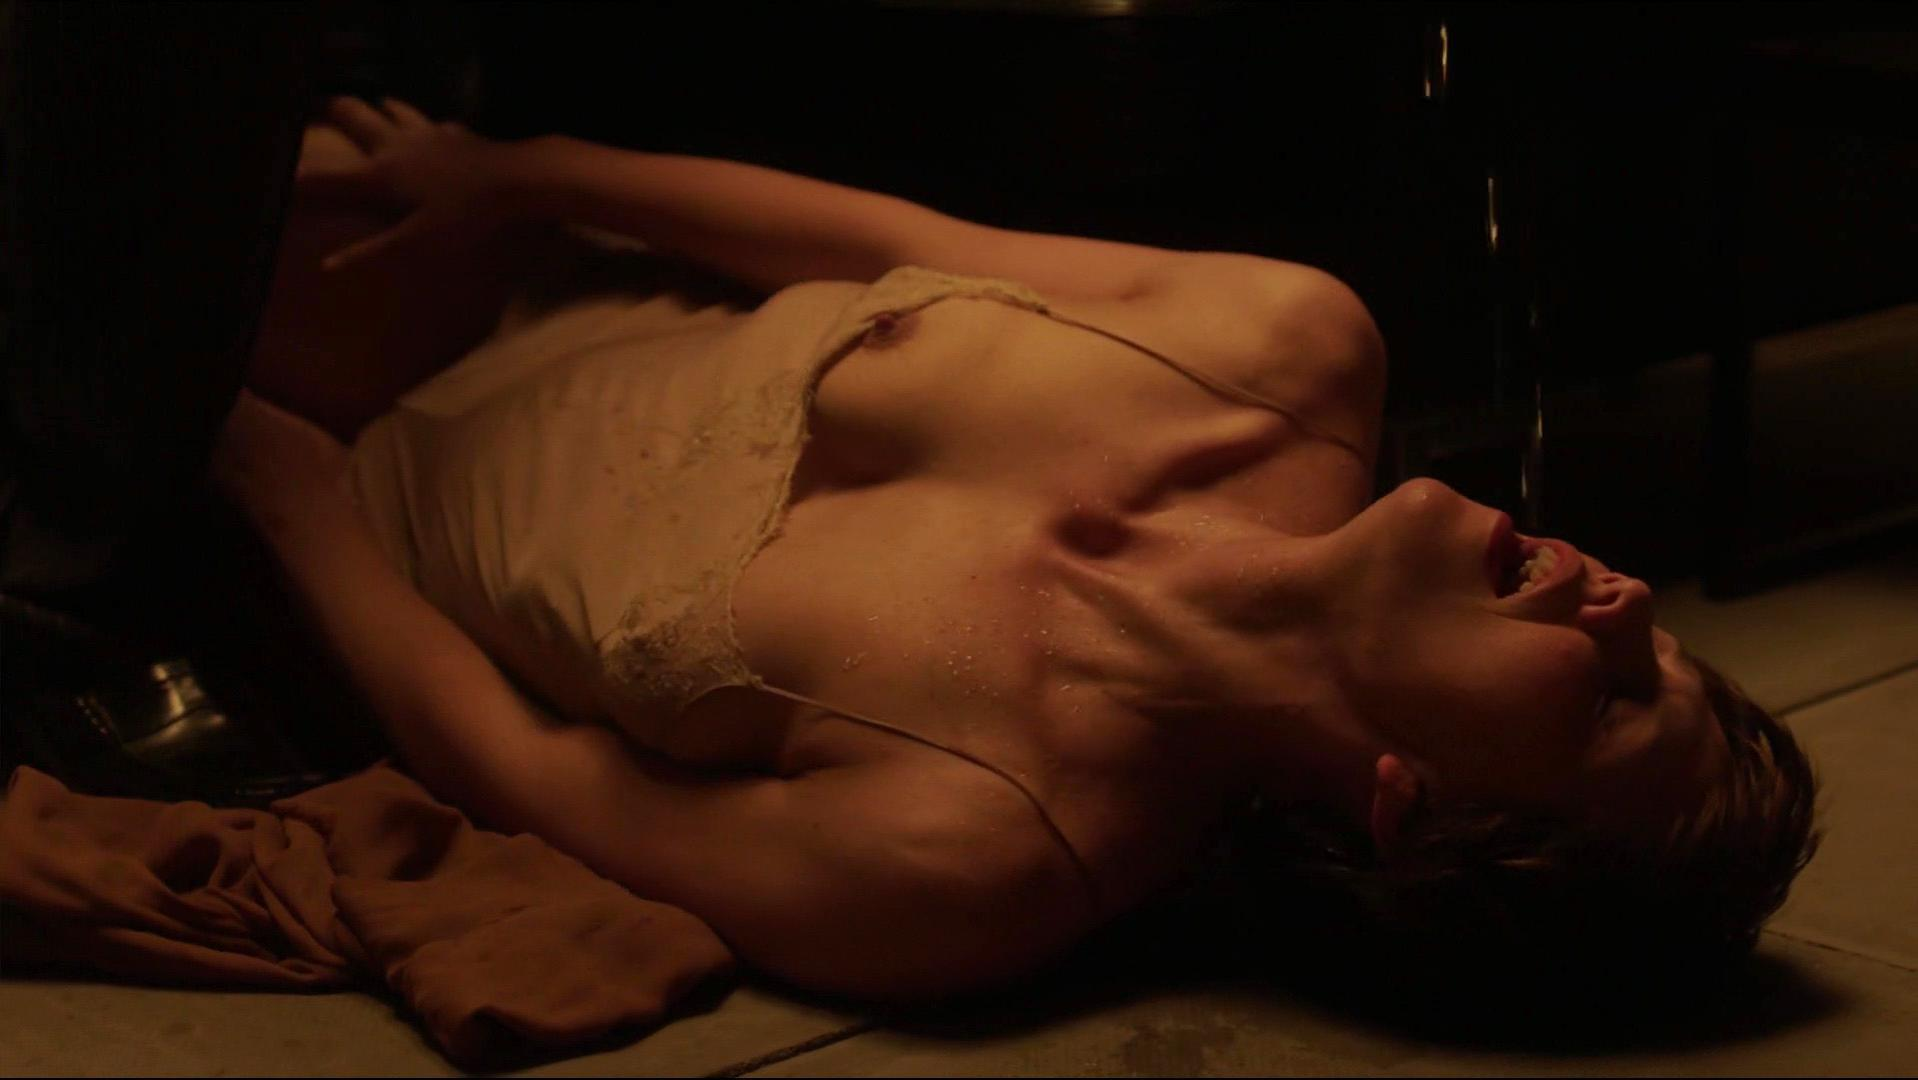 Maggie Gyllenhaal nude - The Honourable Woman s01e06 (2014)